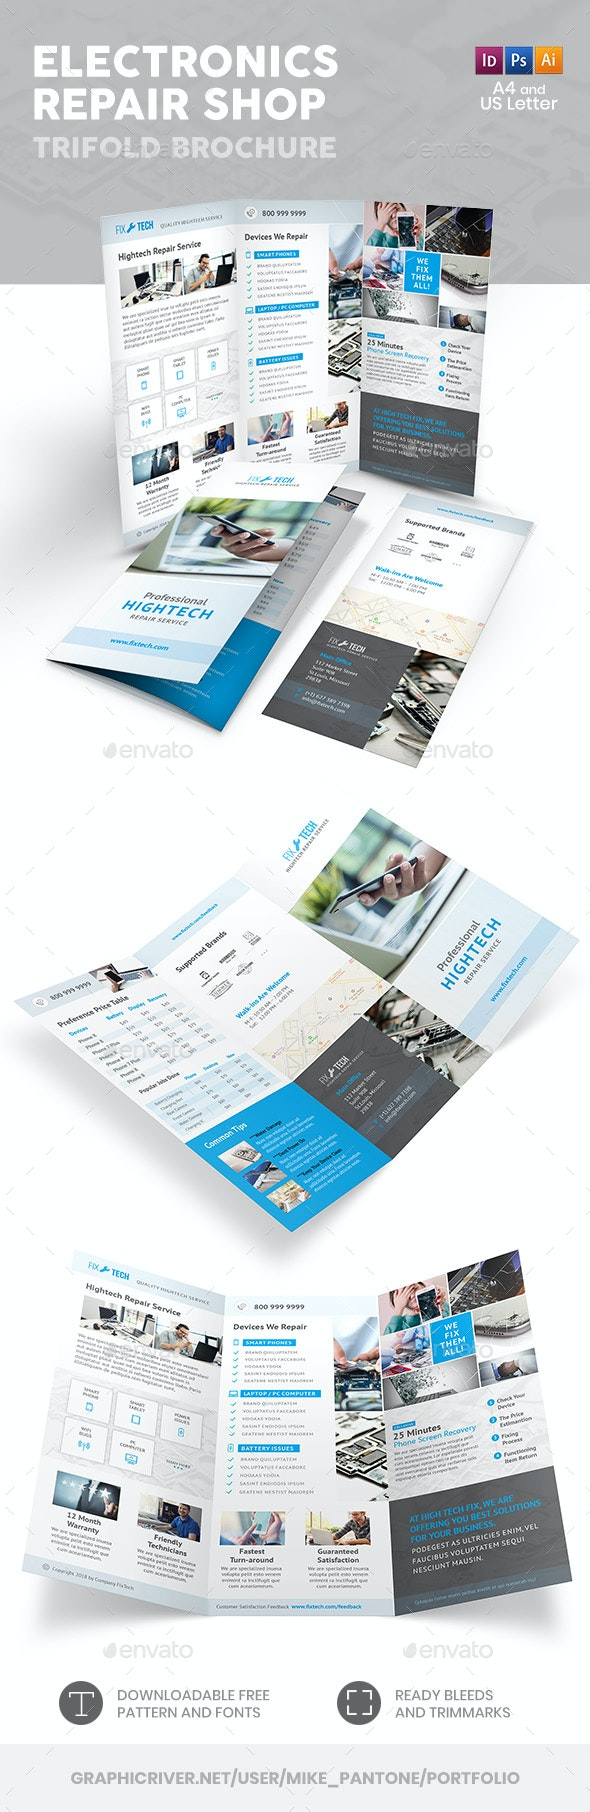 Electronic Repair Shop Trifold Brochure - Informational Brochures